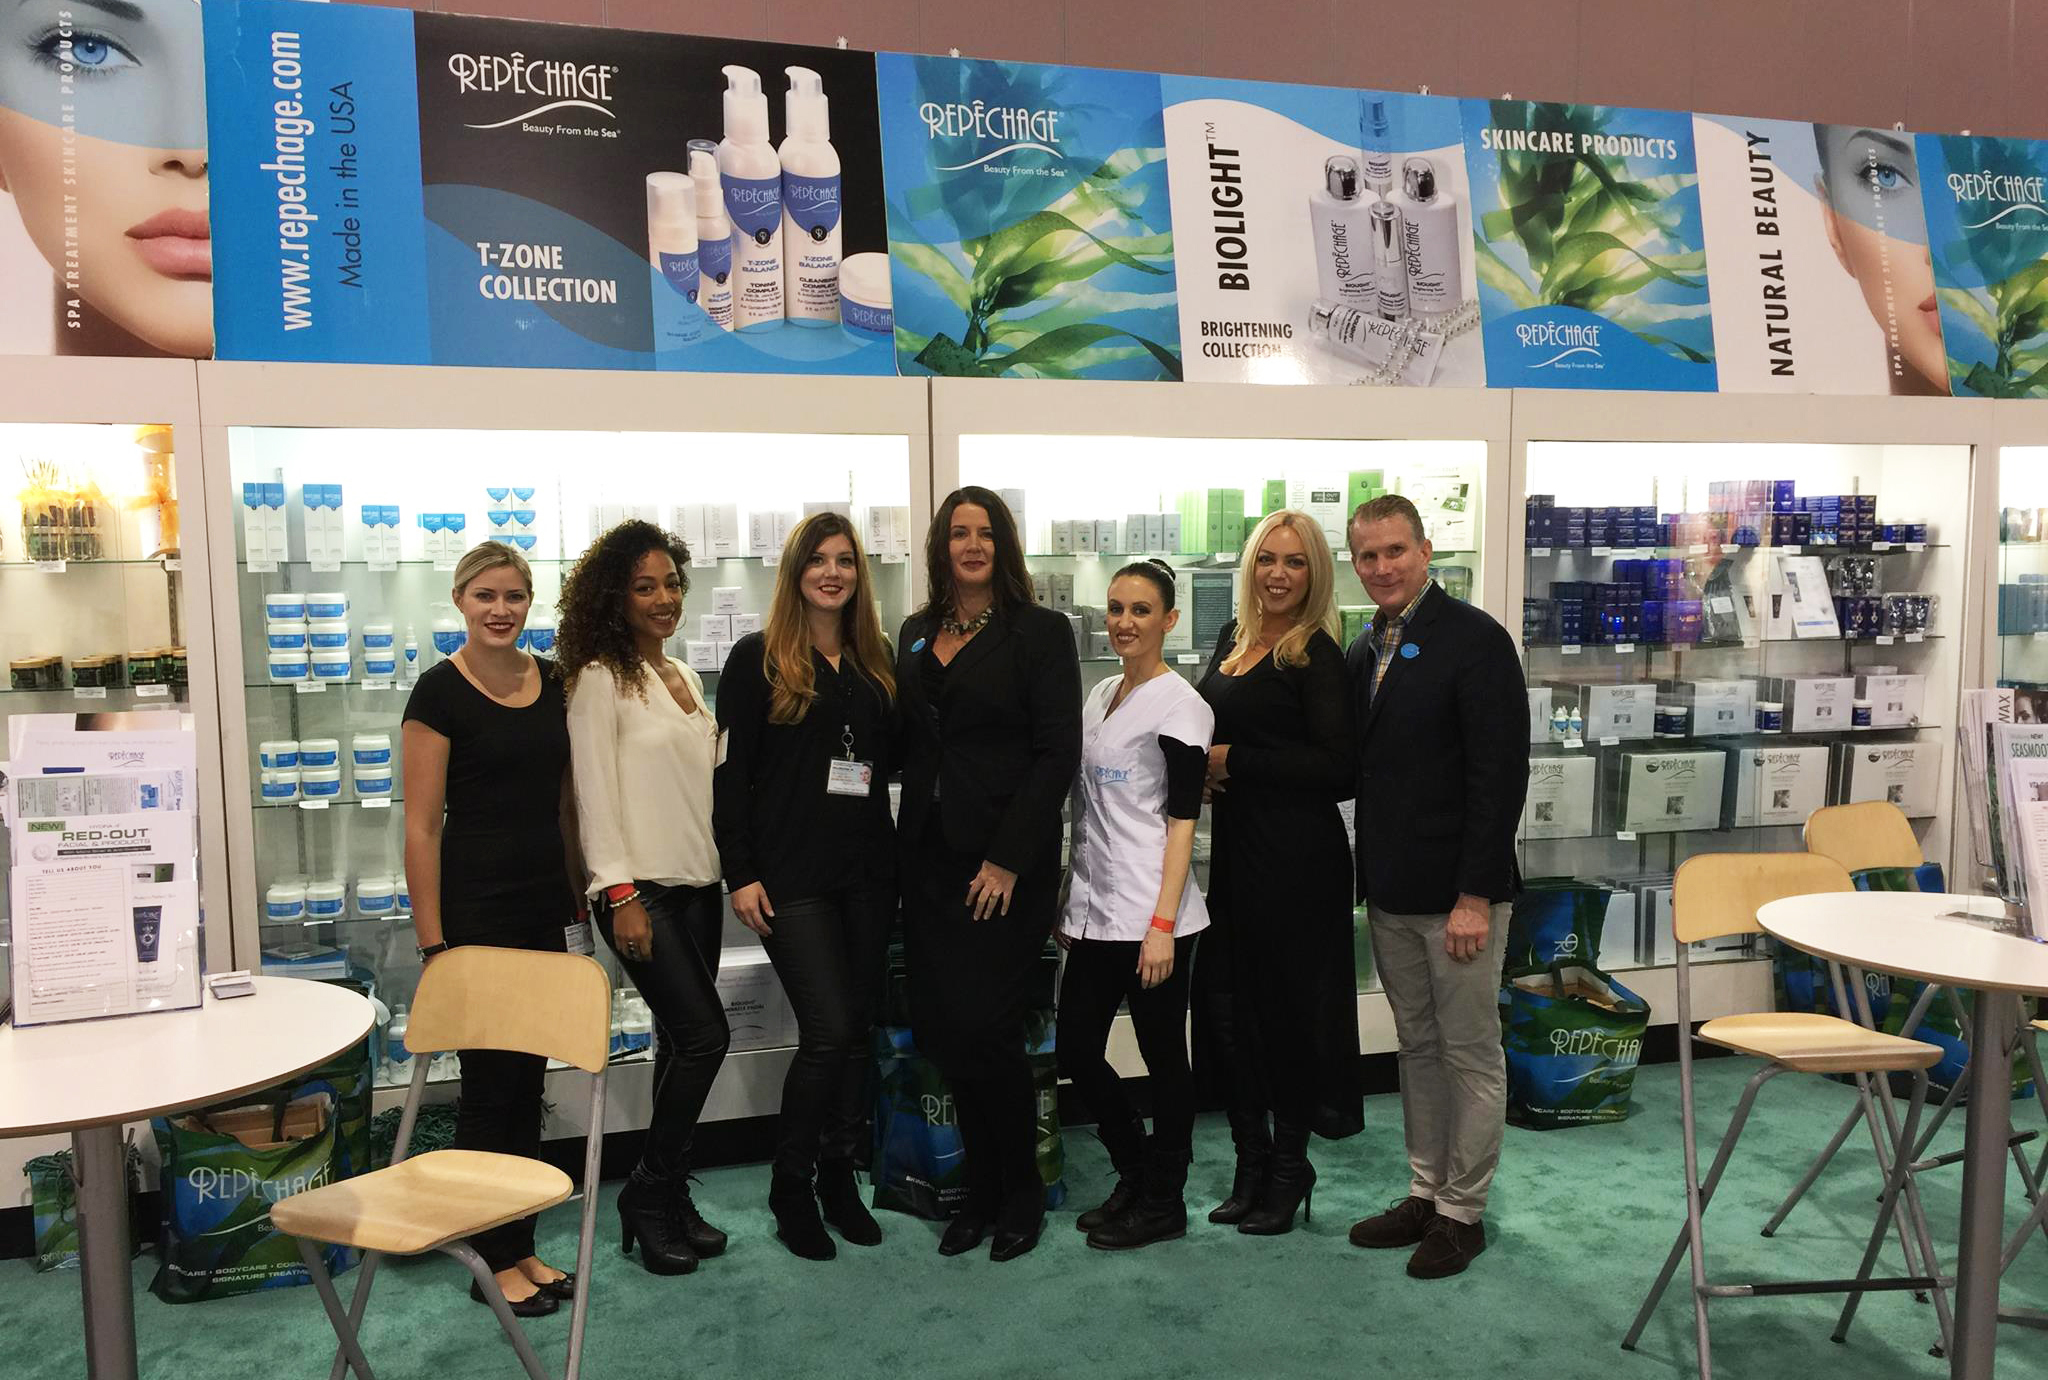 The Repêchage team at LNE's International Congress of Esthetics and Spa, Philadelphia, 2015